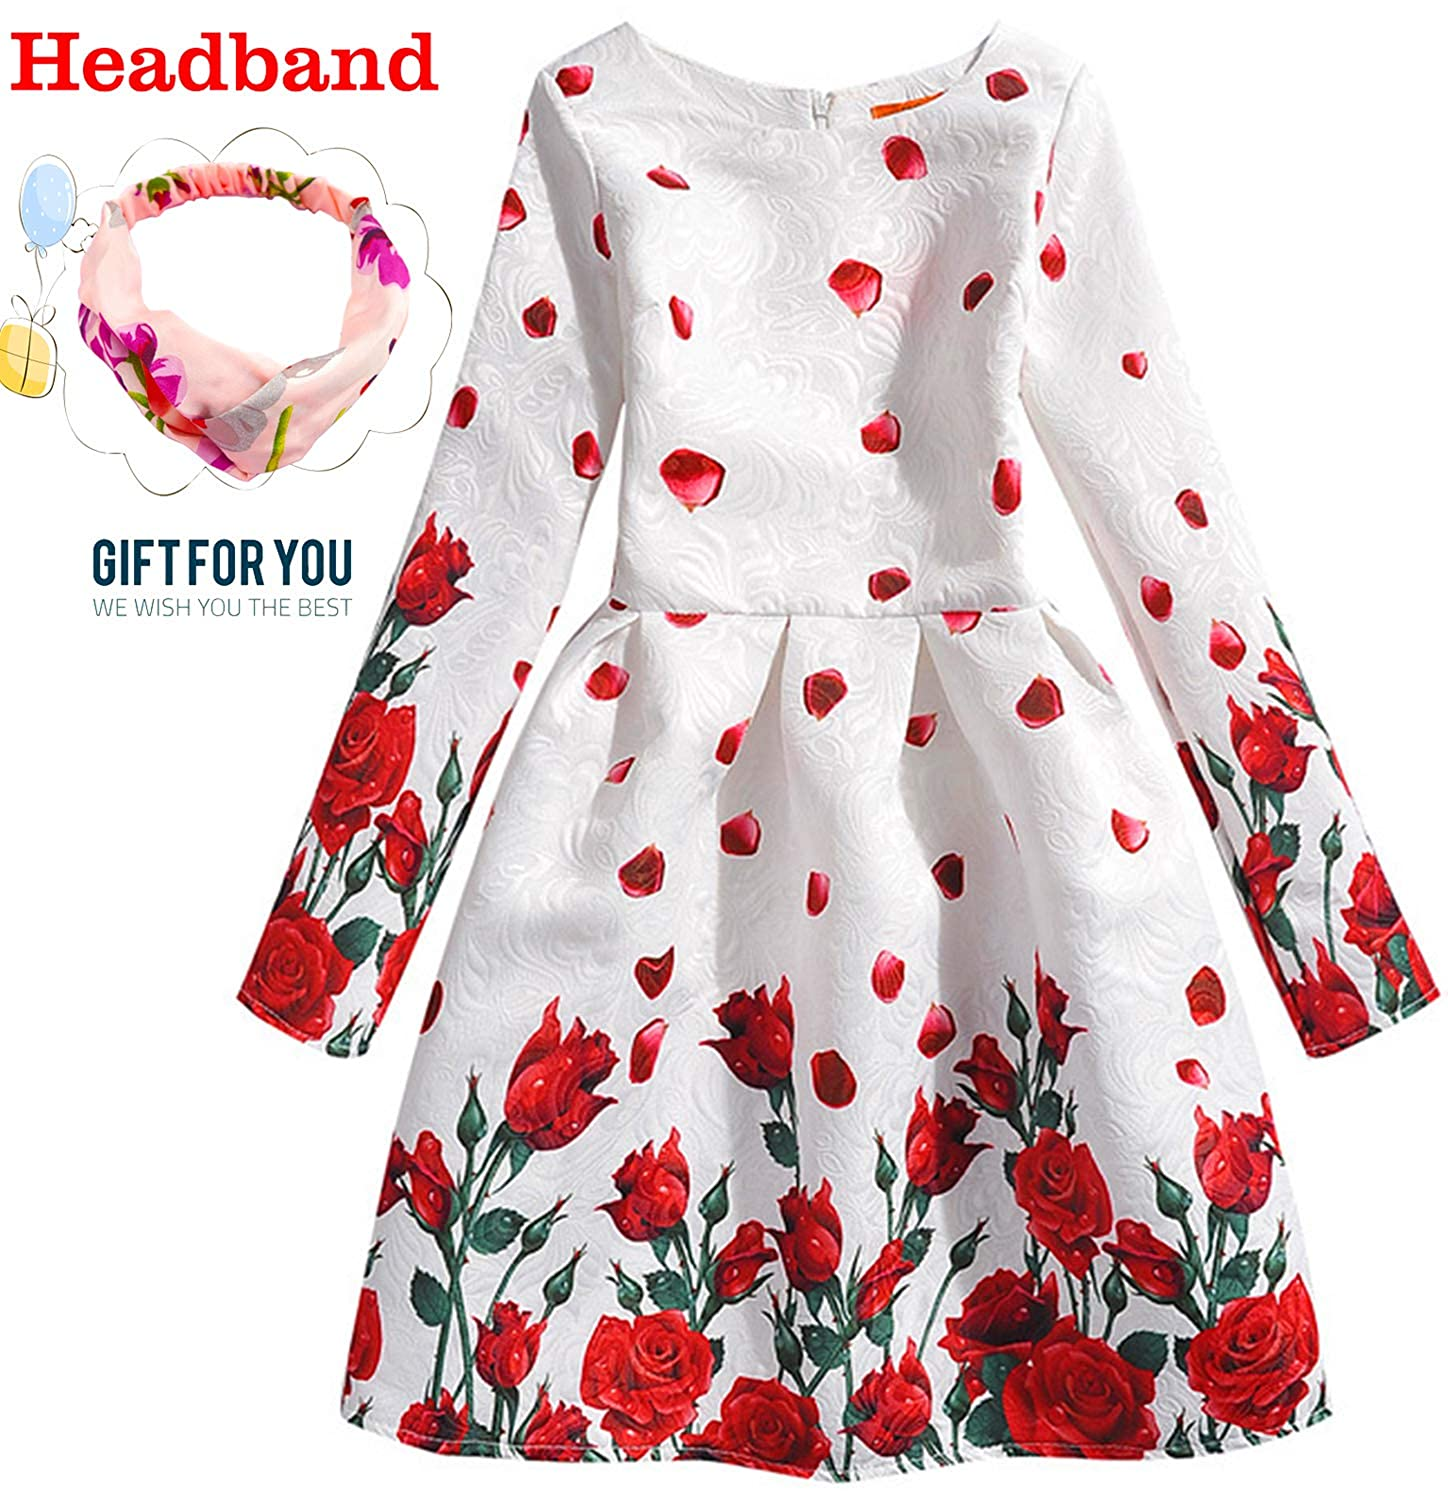 75f06928a660 ????96%Cotton + 4%Spandex, Comfortable hand feeling, High quality fabric  made, focus on the skin safety of girls. Light Weight, Convenience to wear,  ...